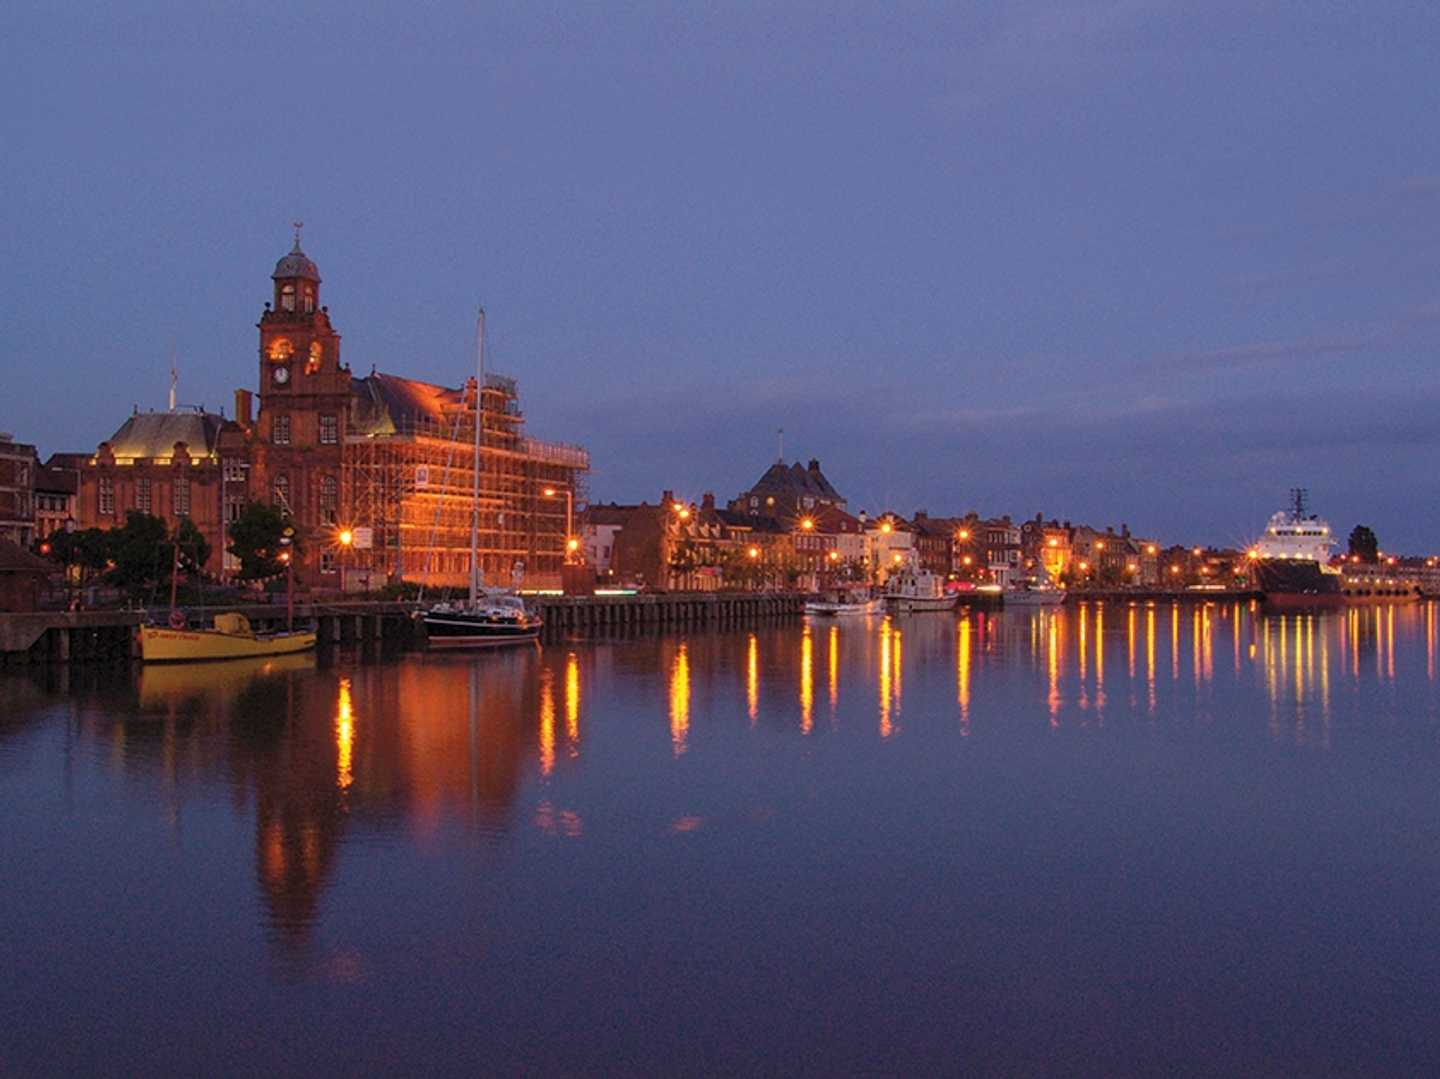 Great Yarmouth quay at dusk